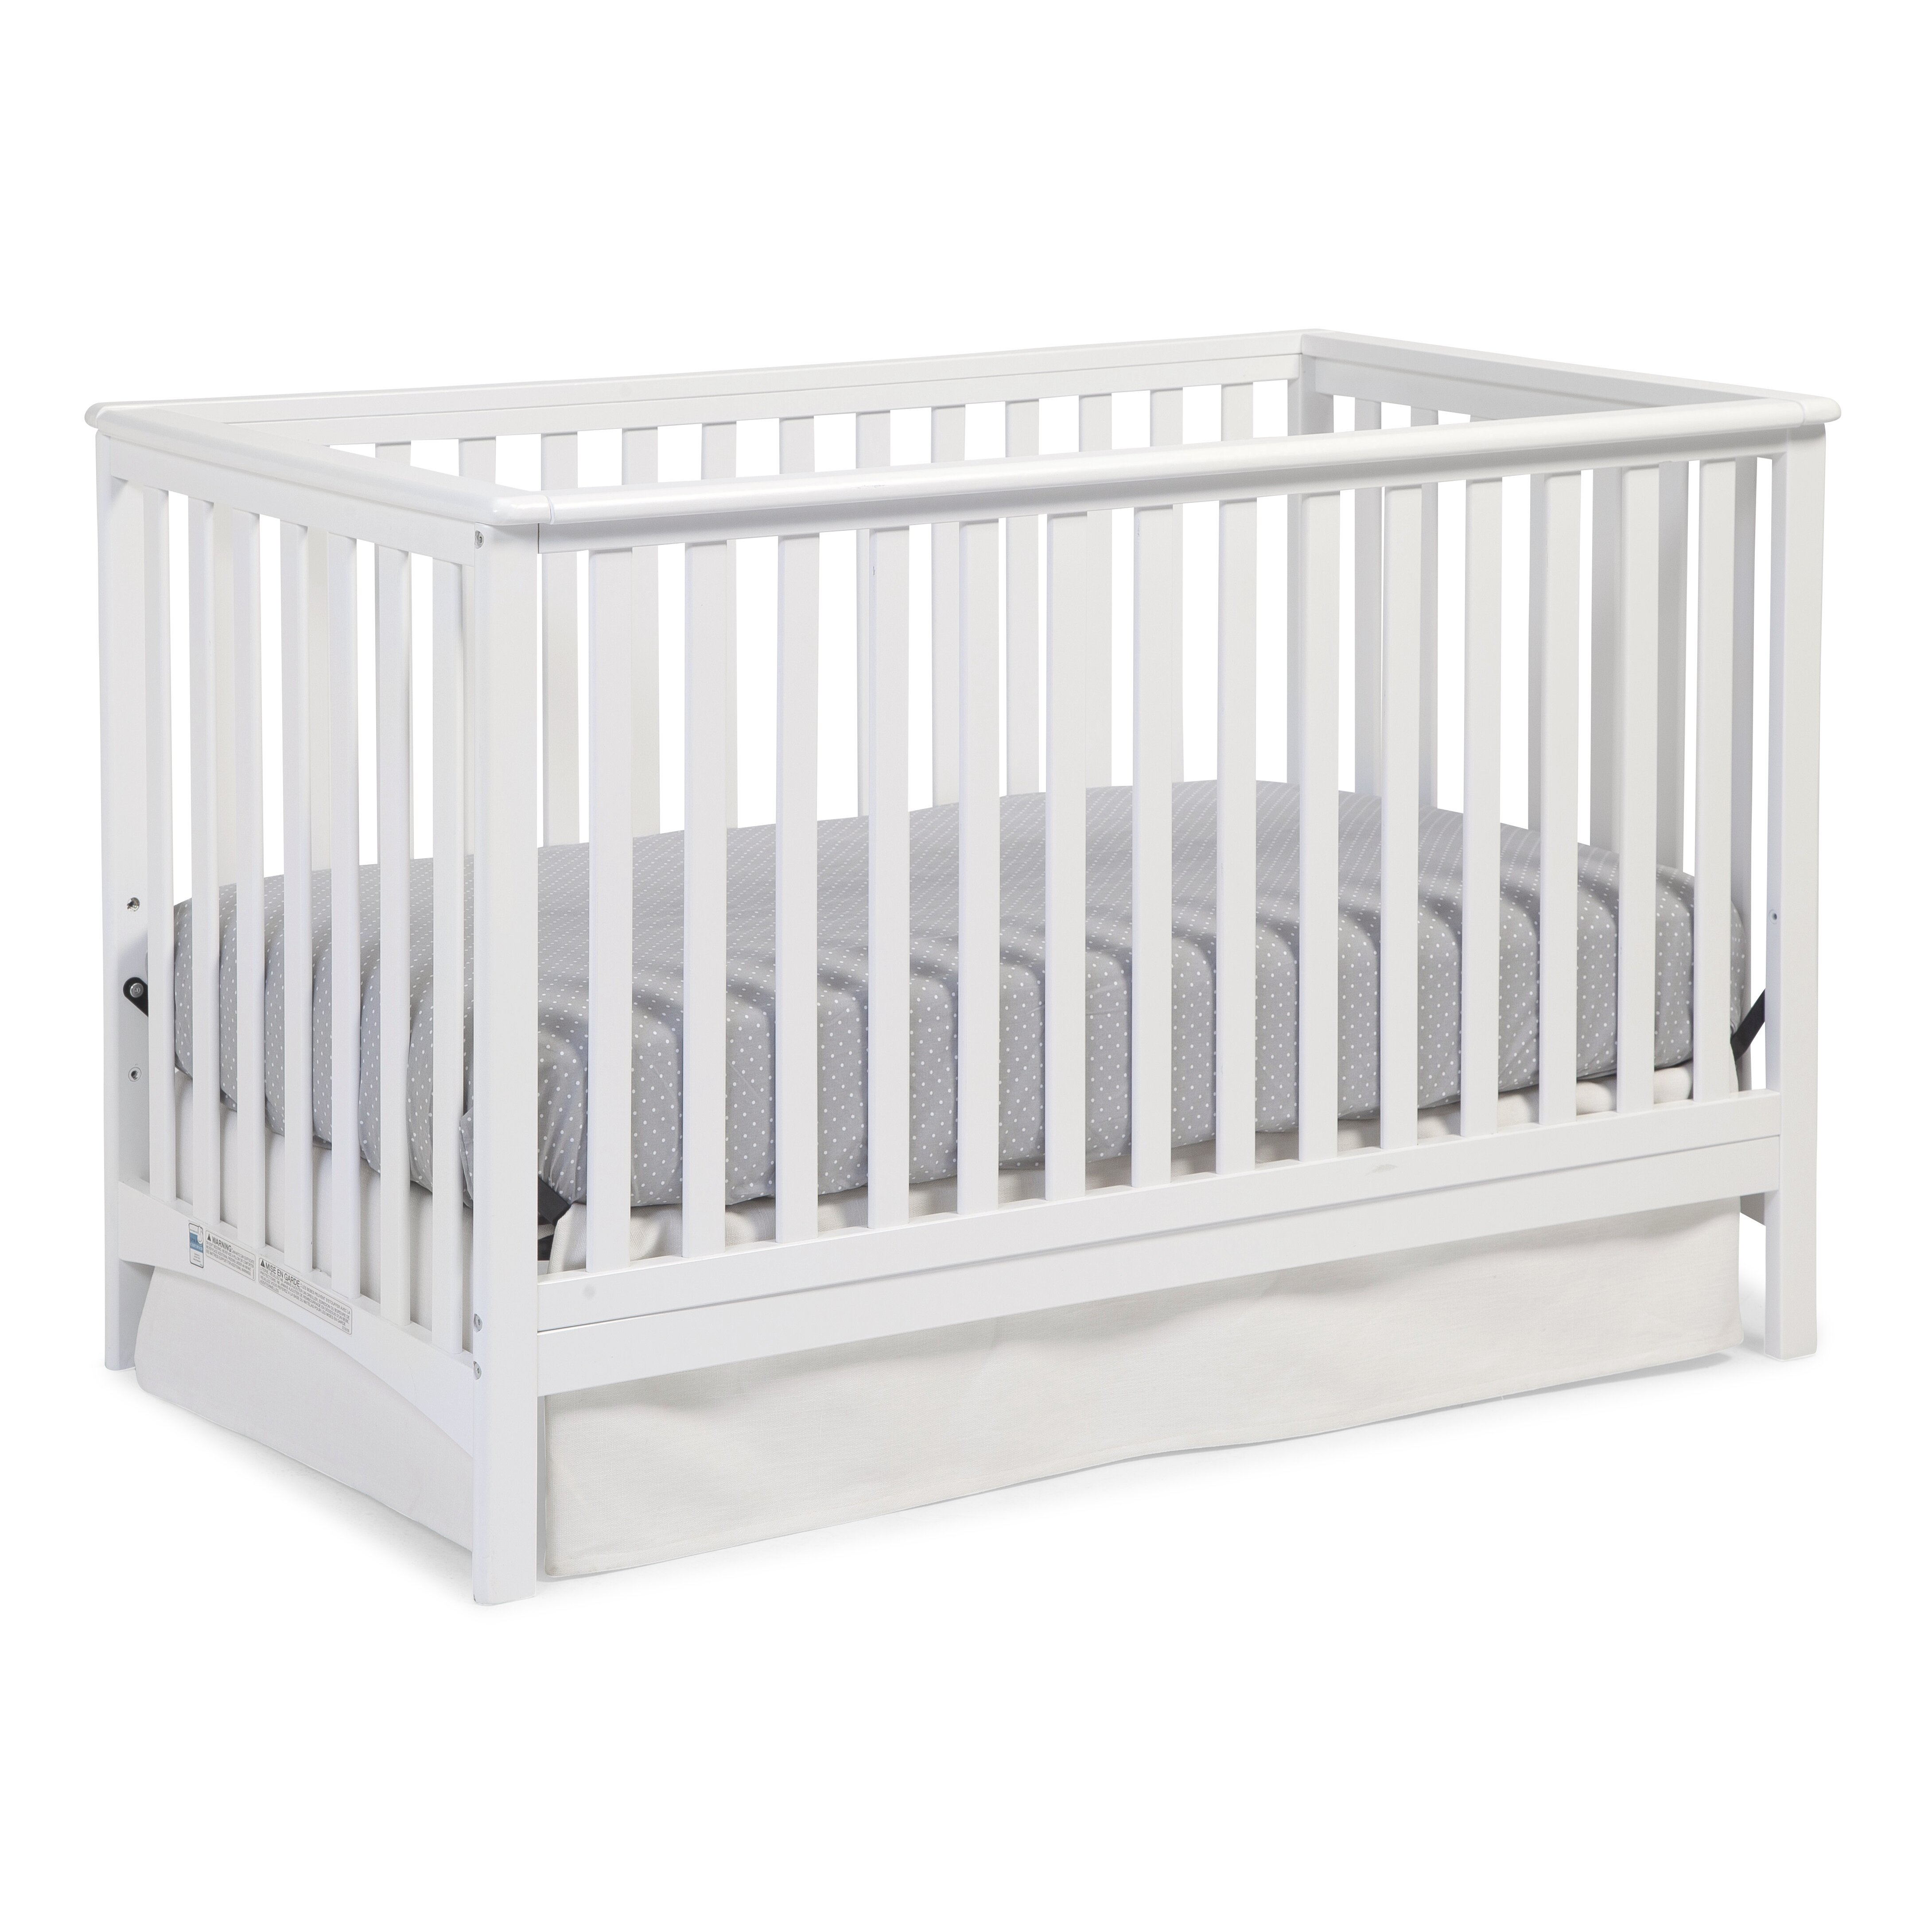 Crib for sale sheffield - Storkcraft Hillcrest 3 In 1 Convertible Crib